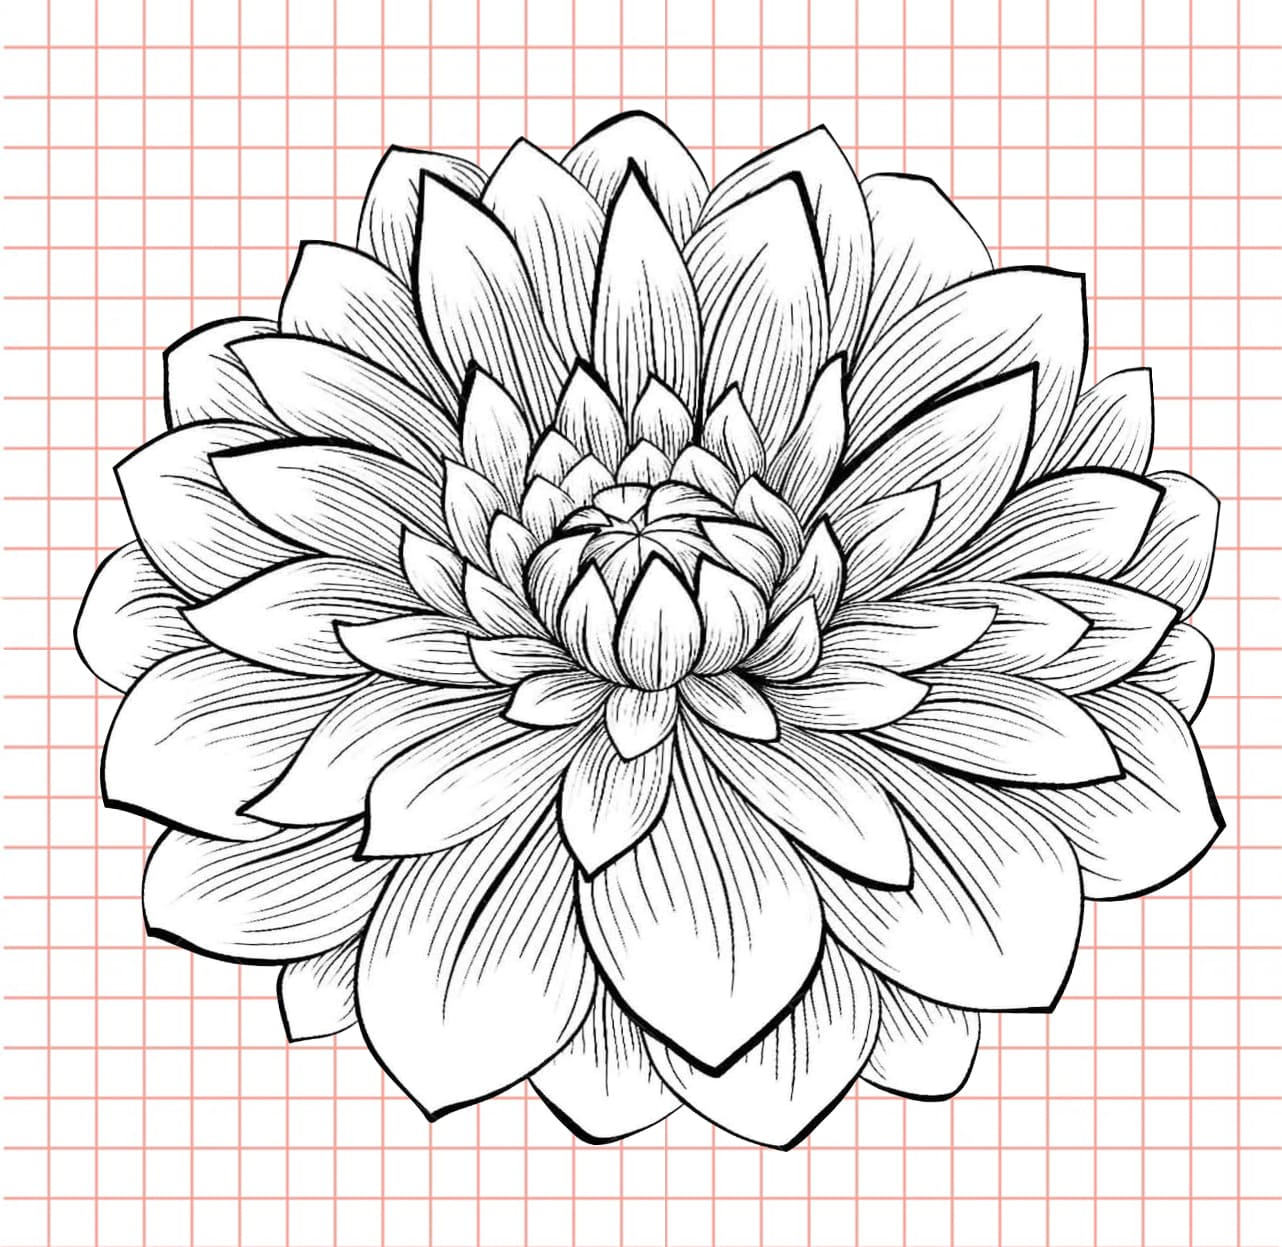 flowers-drawing-image-52